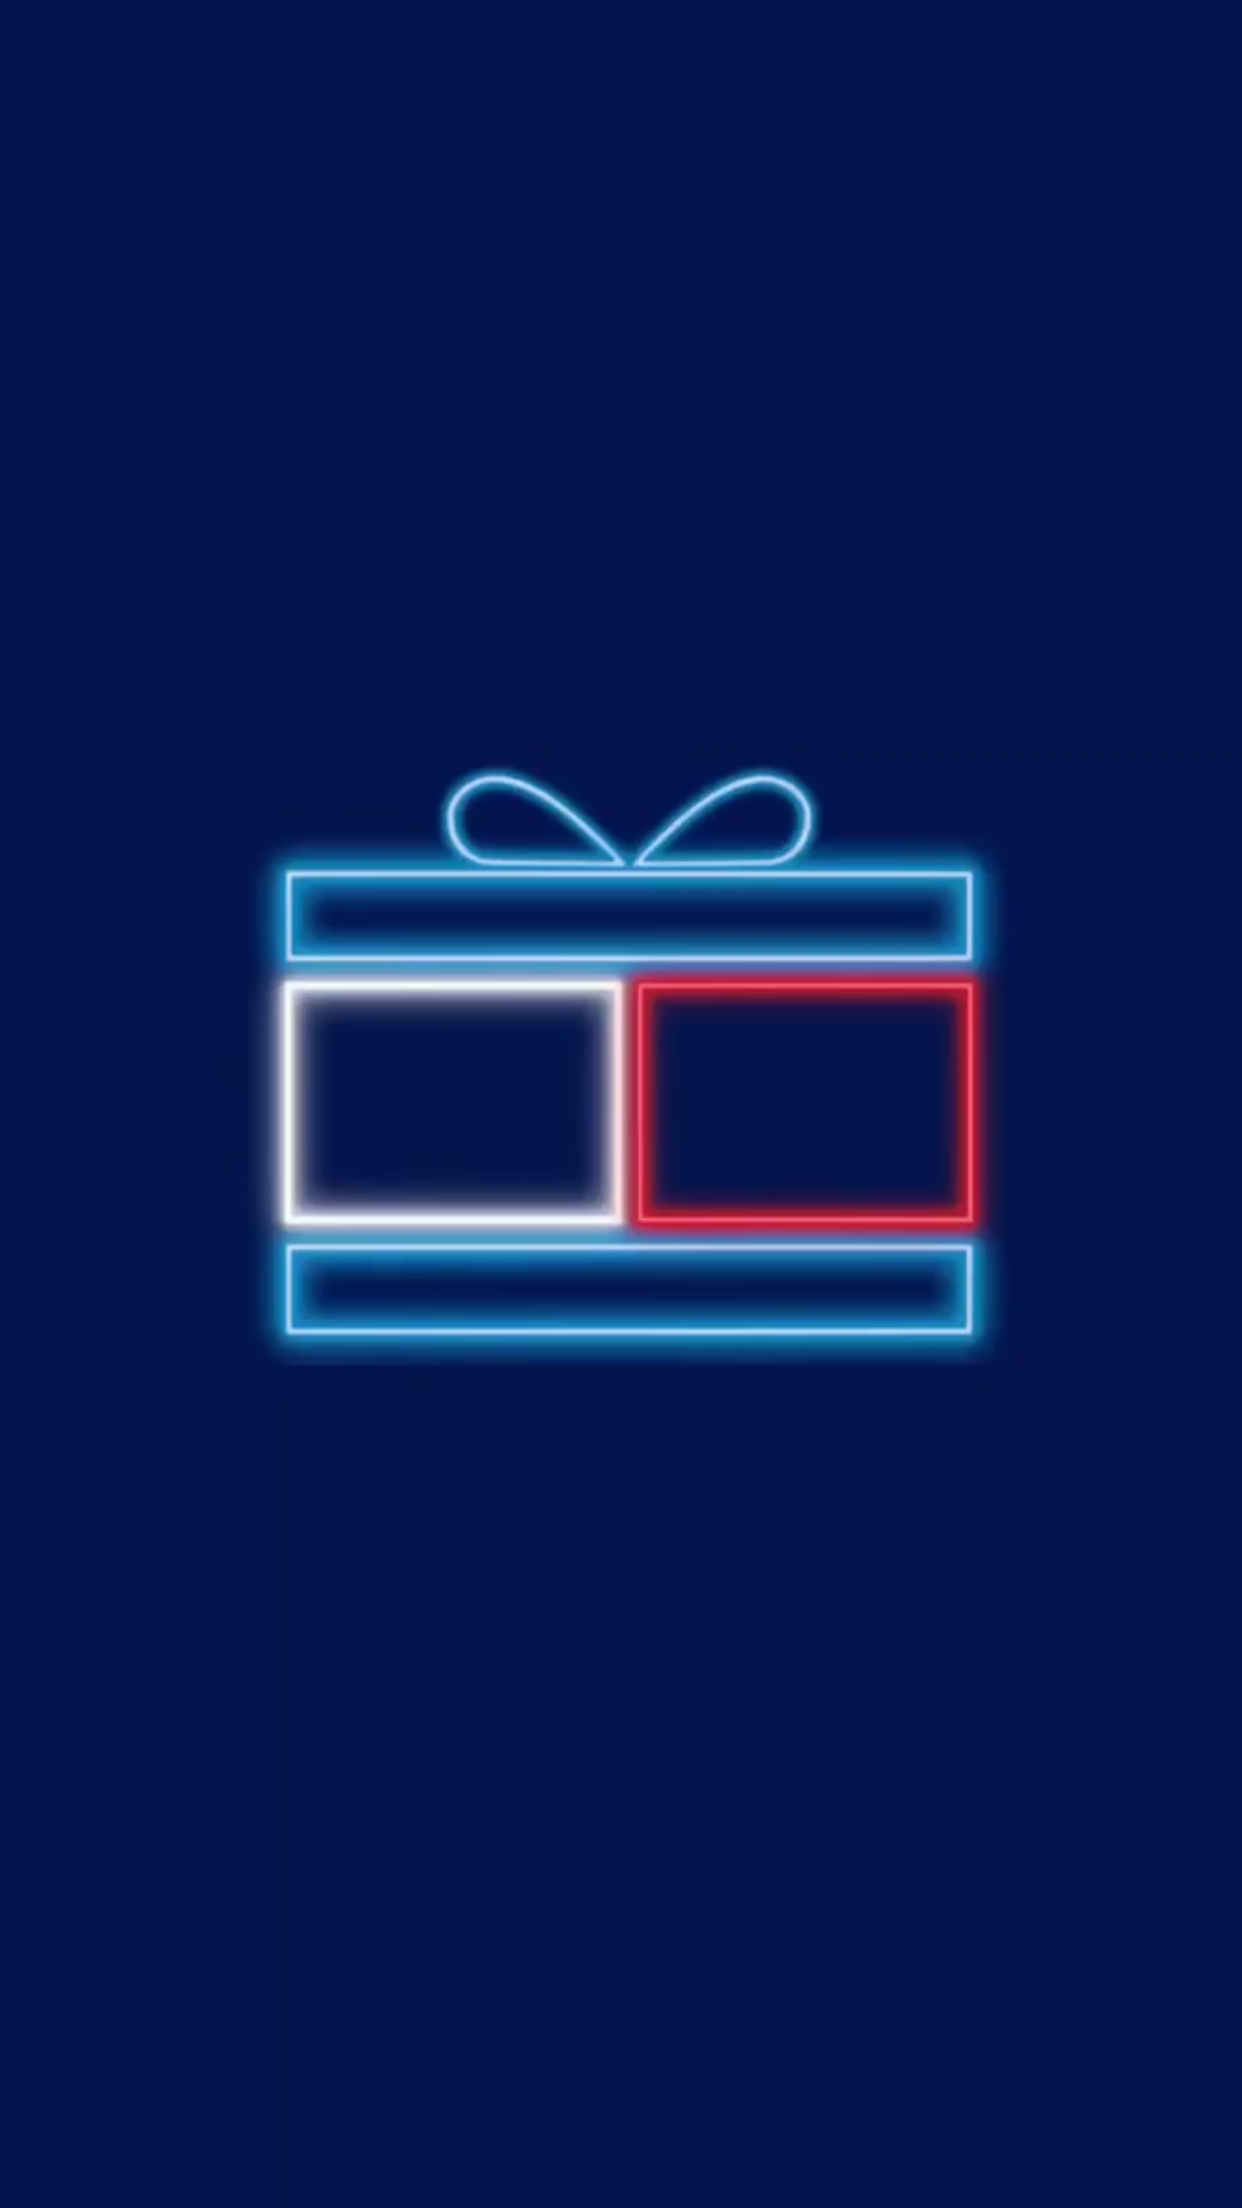 10 New Tommy Hilfiger Logo Wallpaper FULL HD 1080p For PC Background